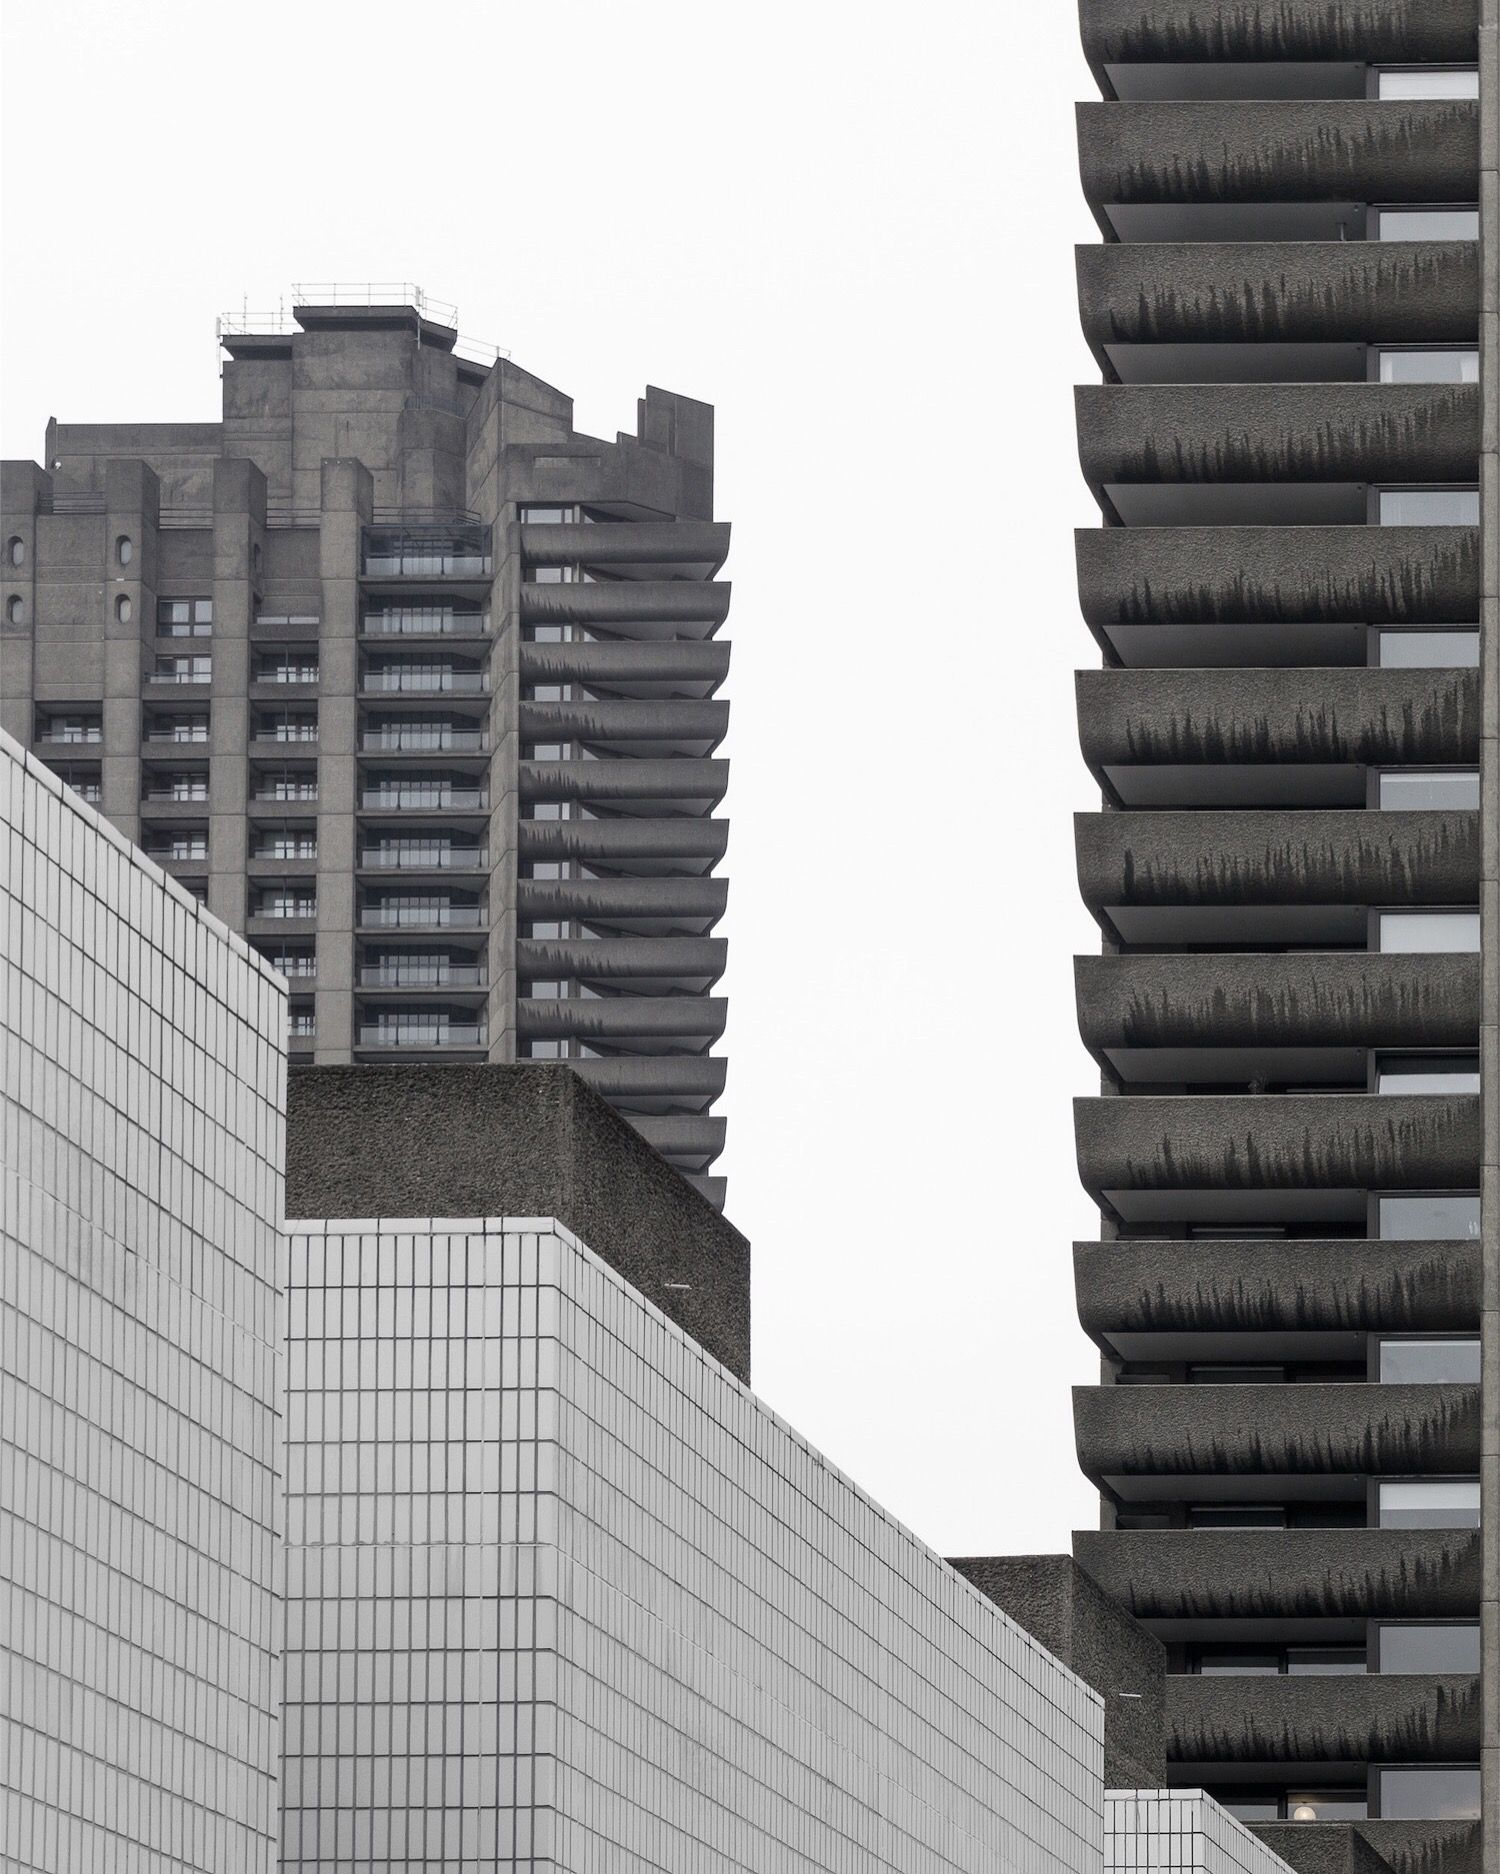 Barbican center by Minorstep